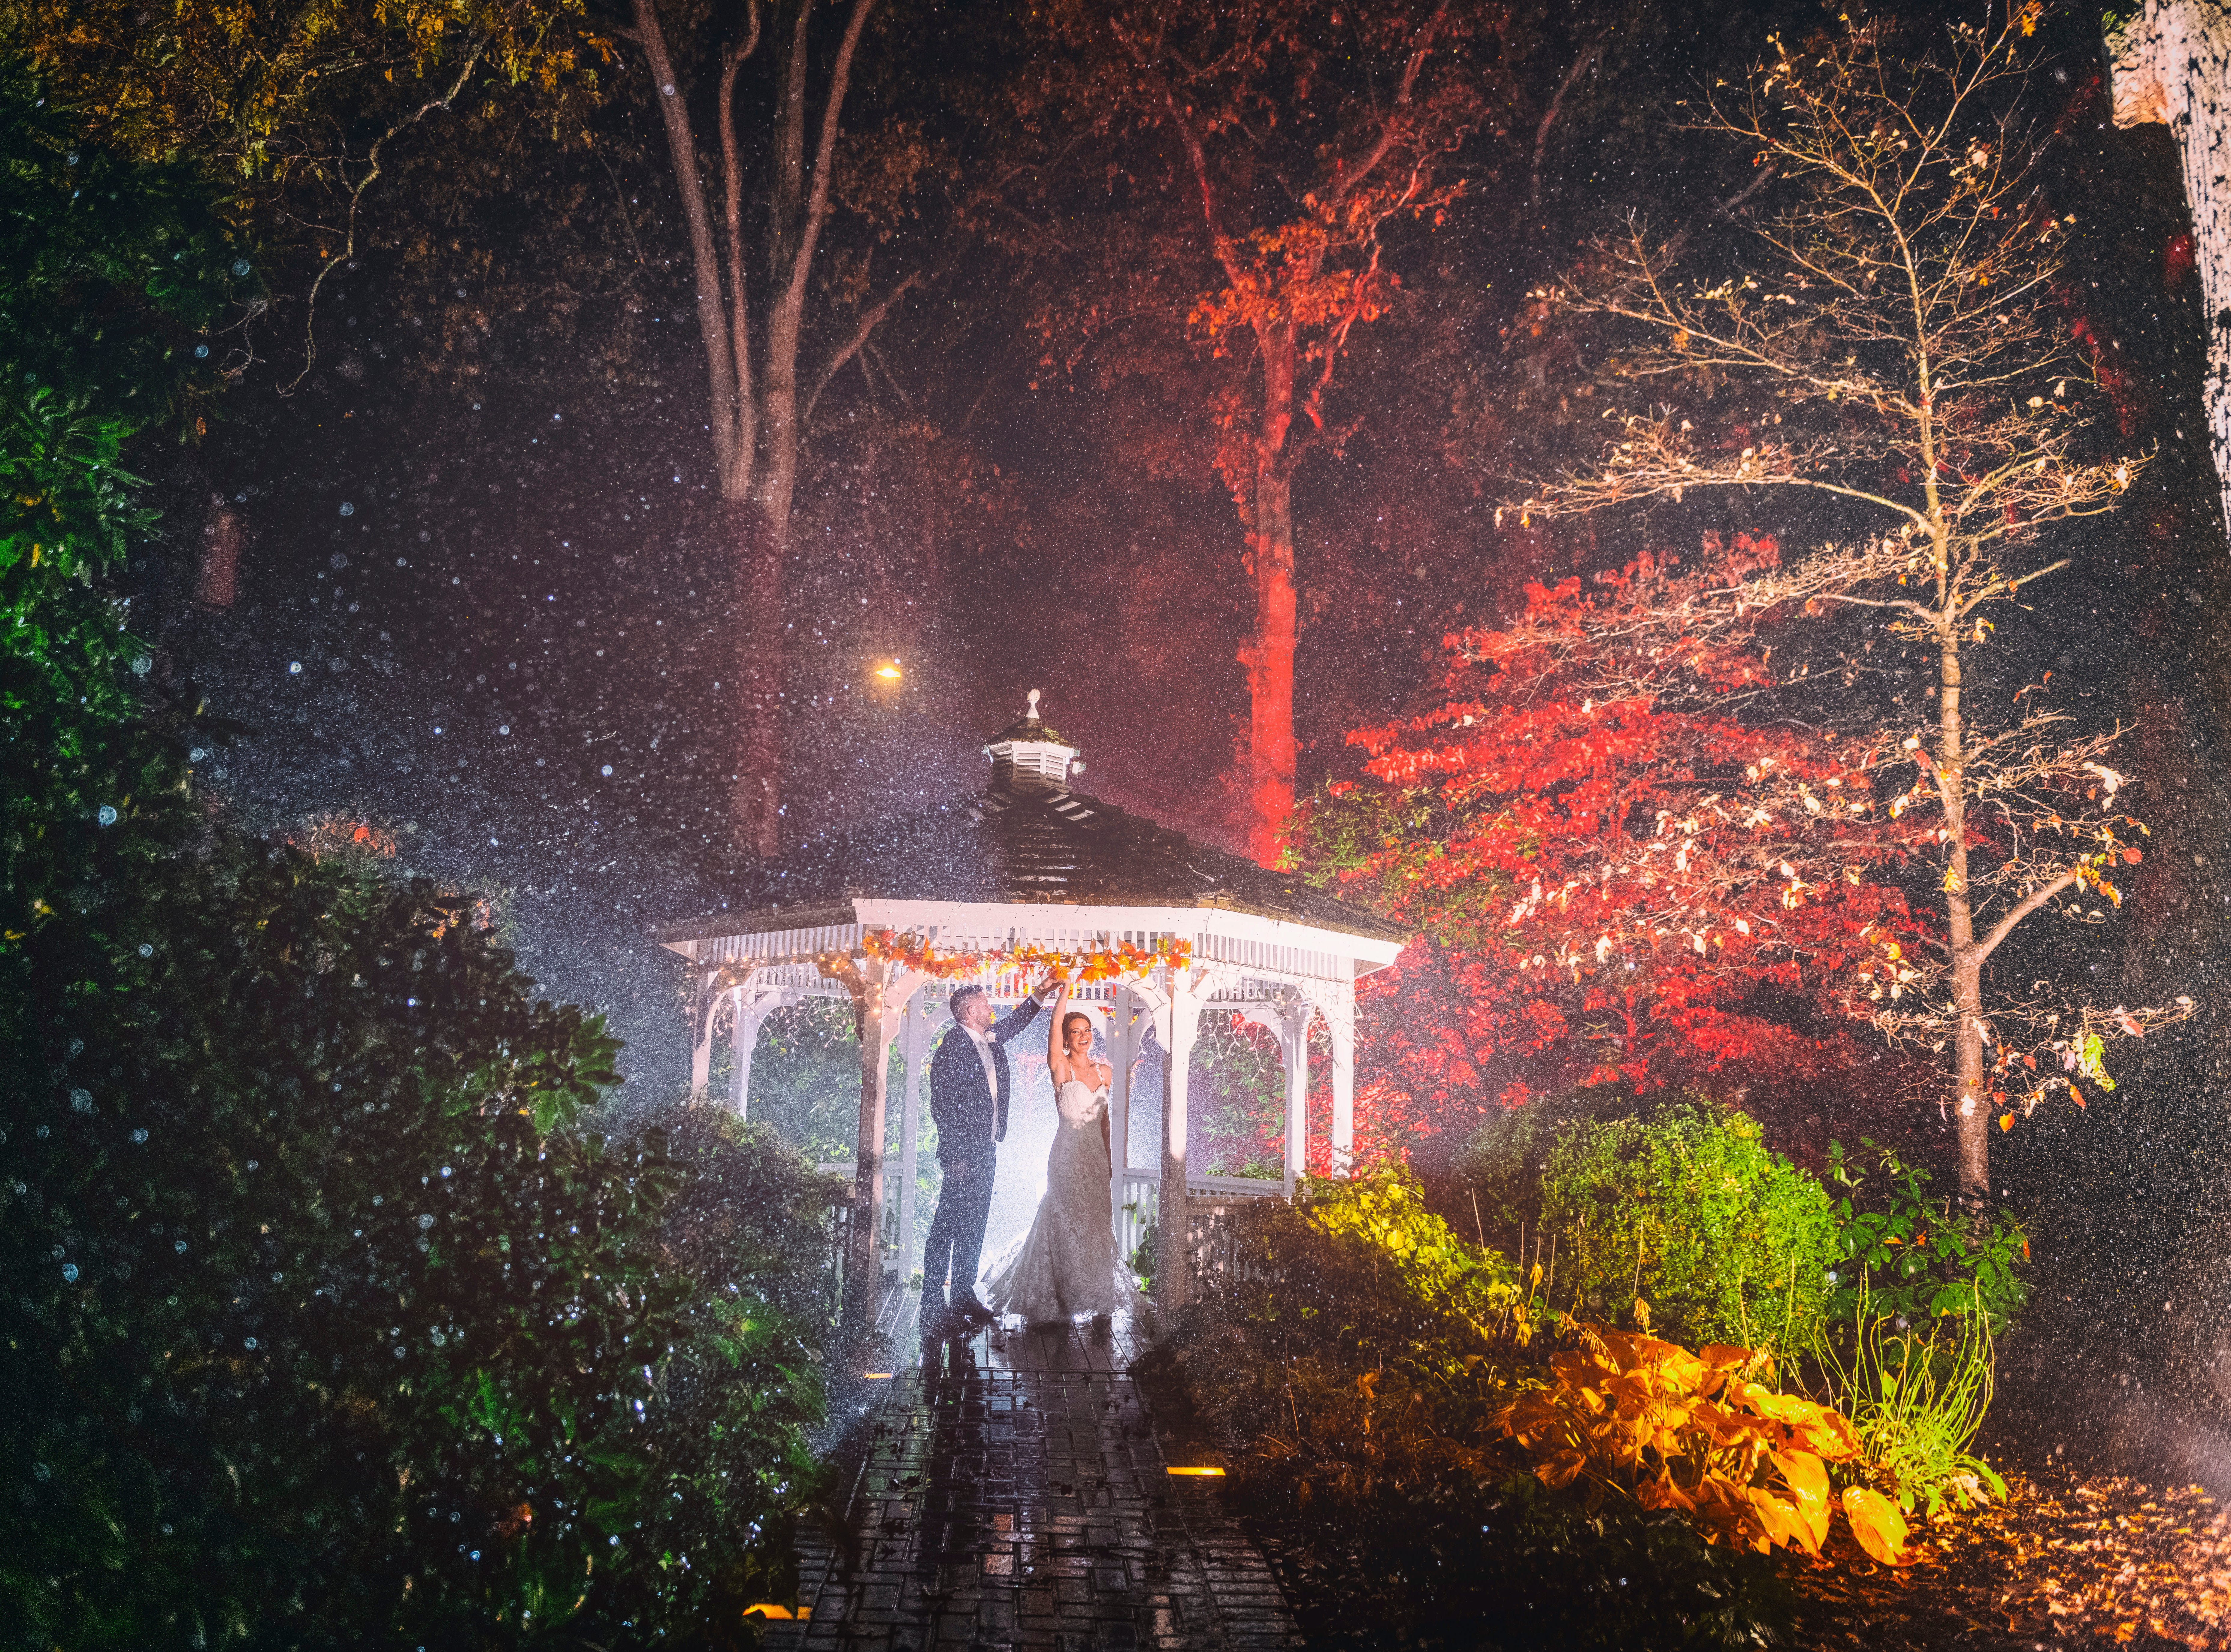 The wedding of Stephanie and Keith Groer at Meredith Manor in Pottstown, Pennsylvania.